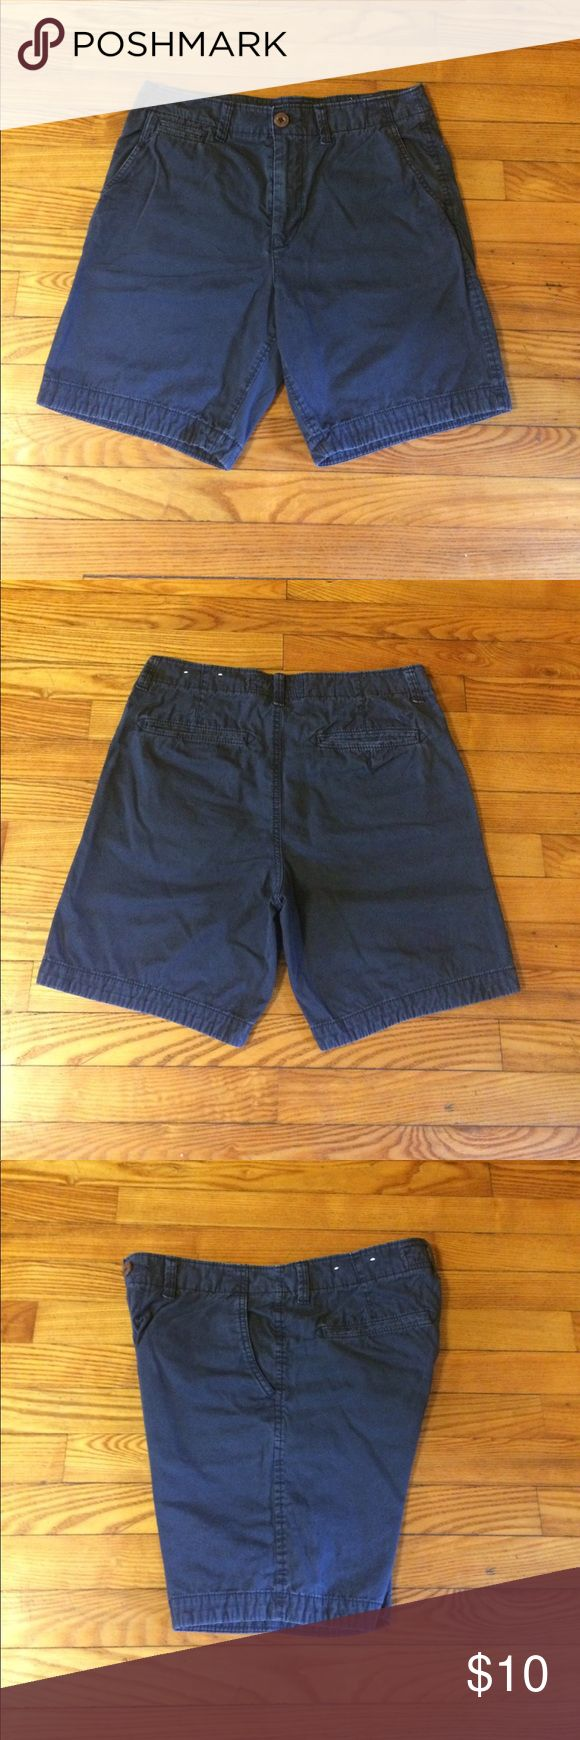 """Chino Shorts 7"""" Navy American Eagle chino's. Size 30. Logo above the back pocket is also navy so they blend. Hardly ever worn. Bundle with other chinos or simply make an offer! American Eagle Outfitters Shorts Flat Front"""